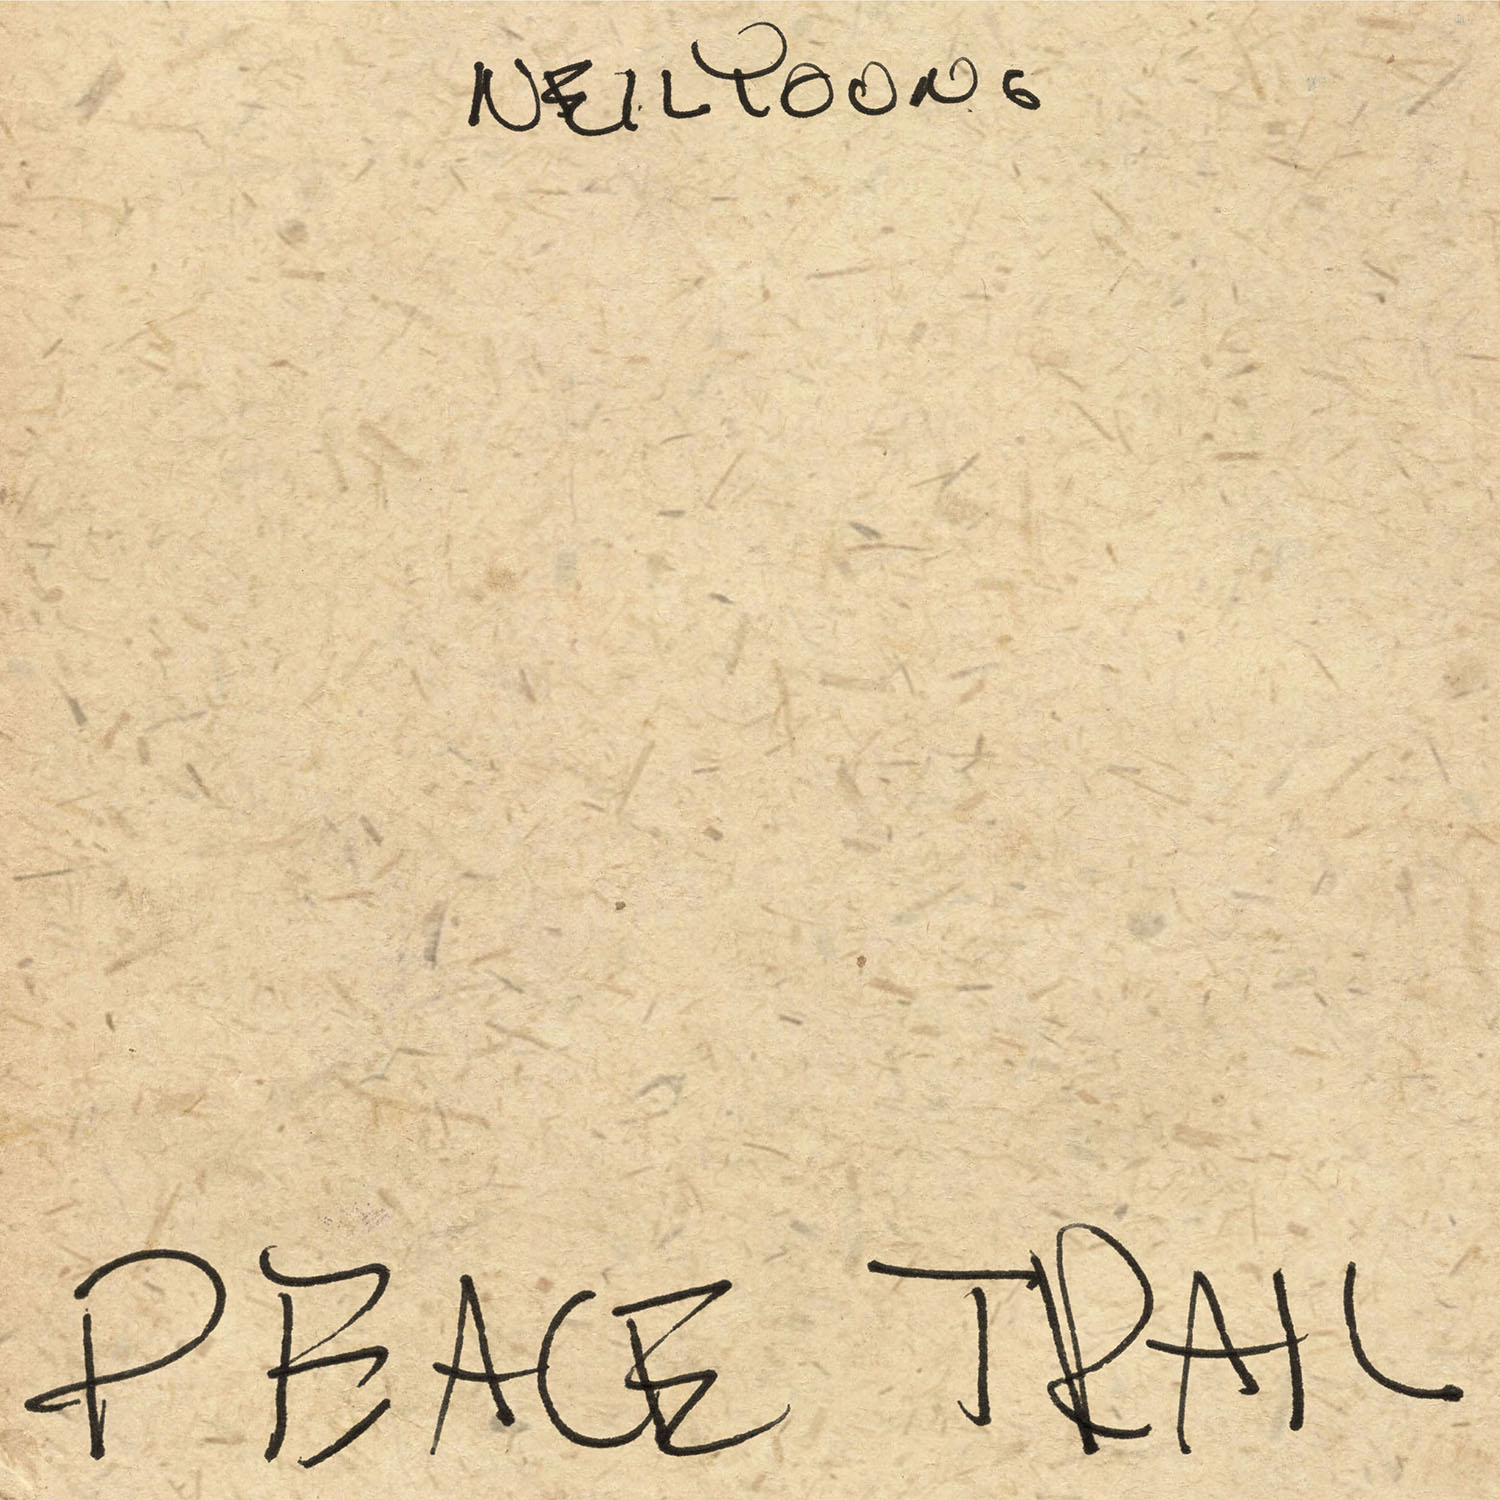 neil young peace trail Neil Young to release his 38th album (!) Peace Trail in December